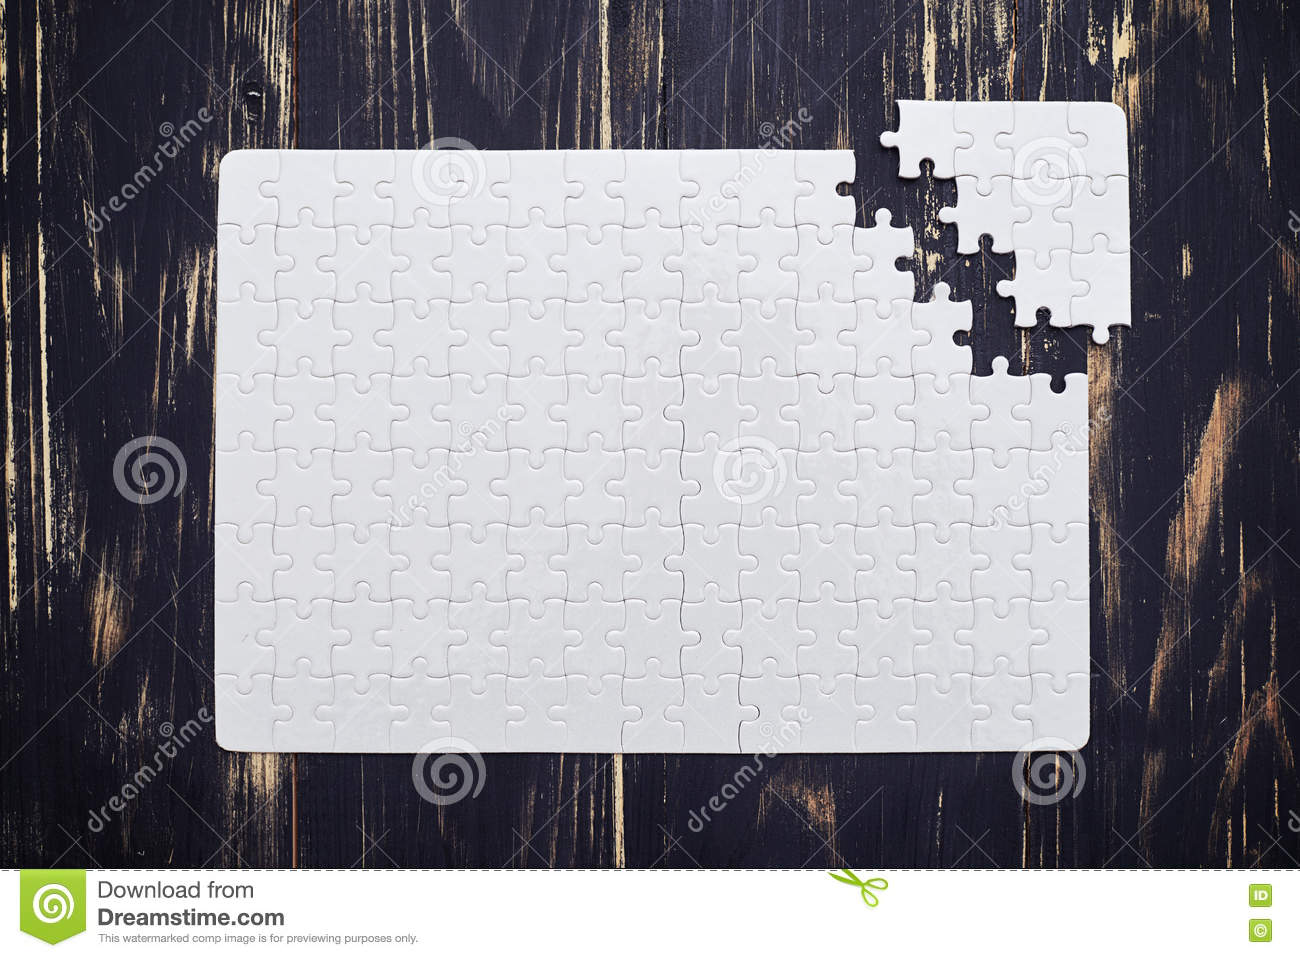 Puzzle close to soltion on dark wooden desk